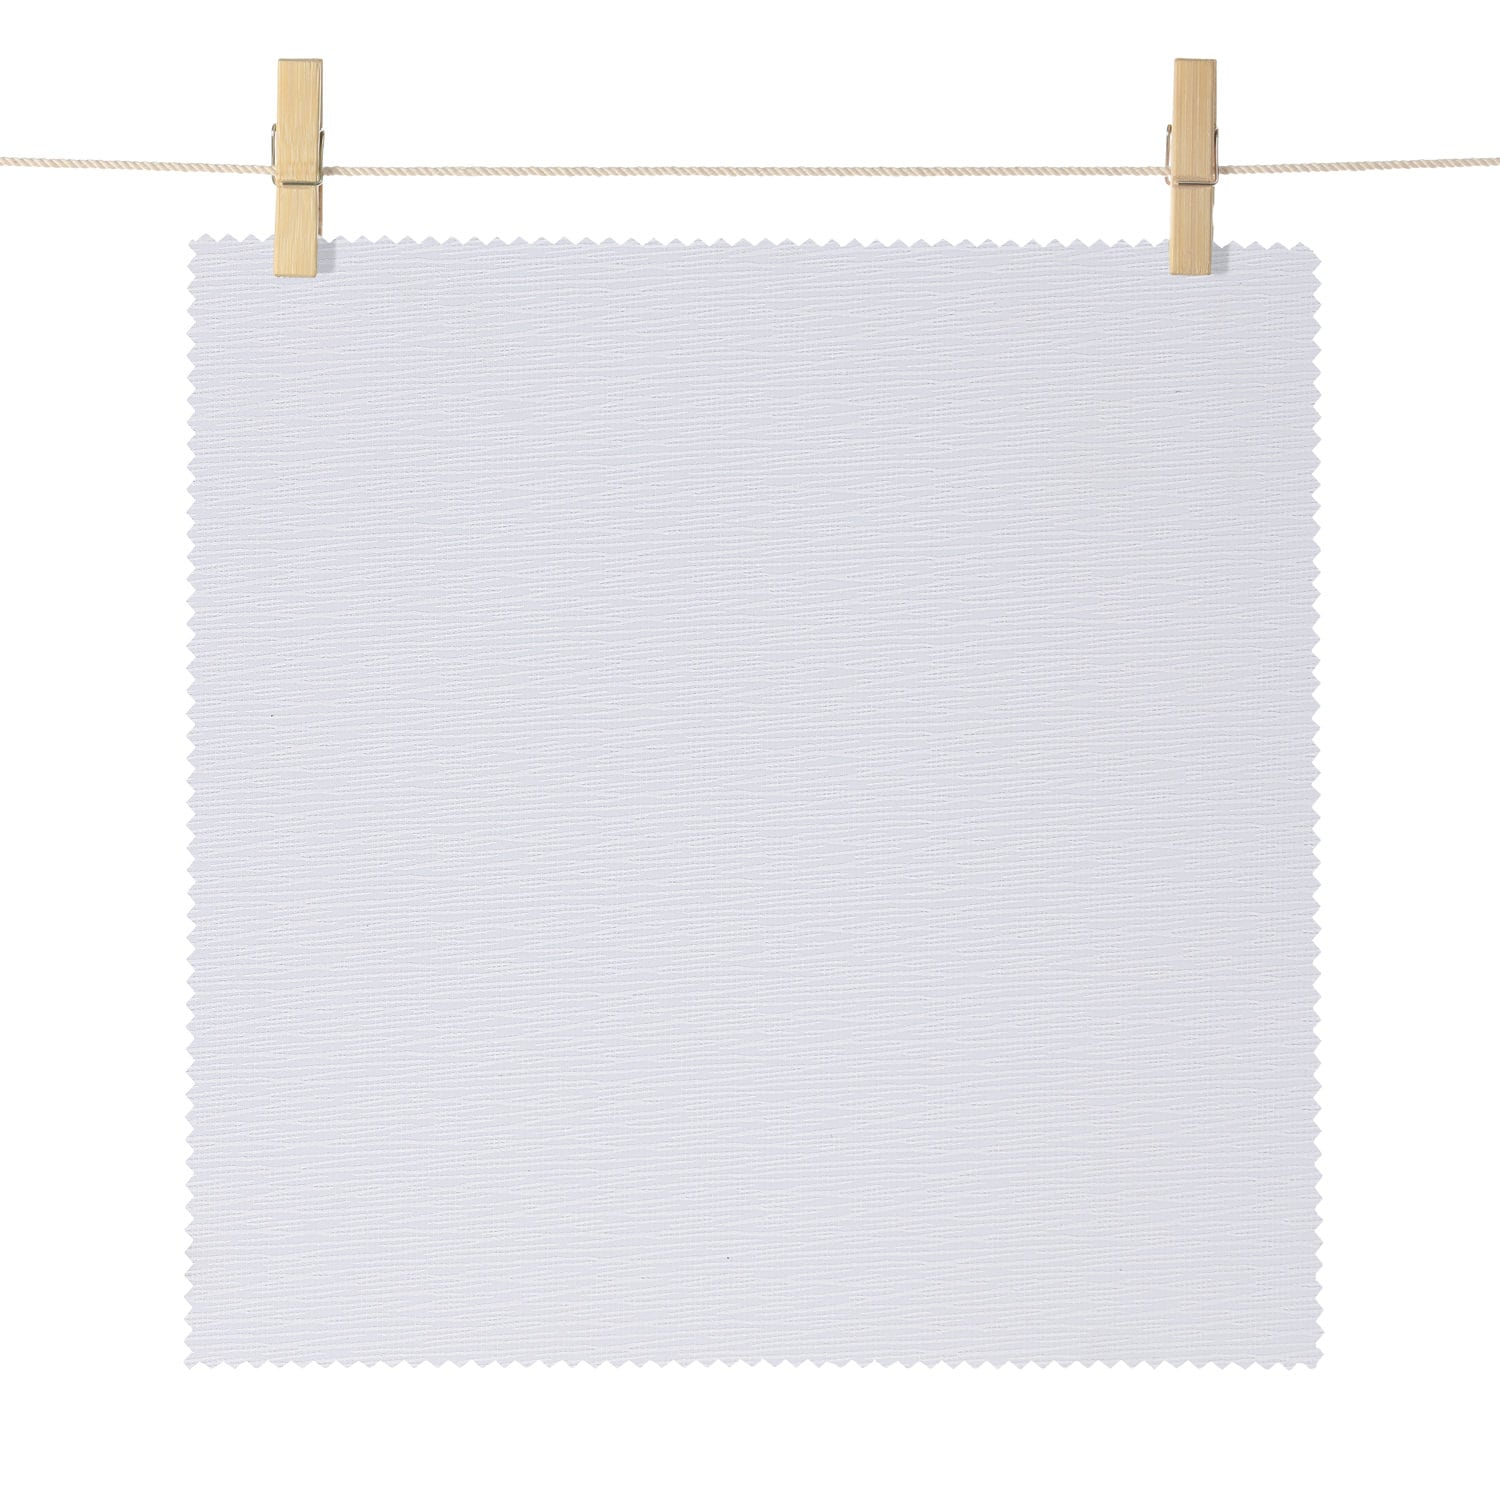 Dunsmuir White Boucle Textured Blackout Roller Shade Swatch